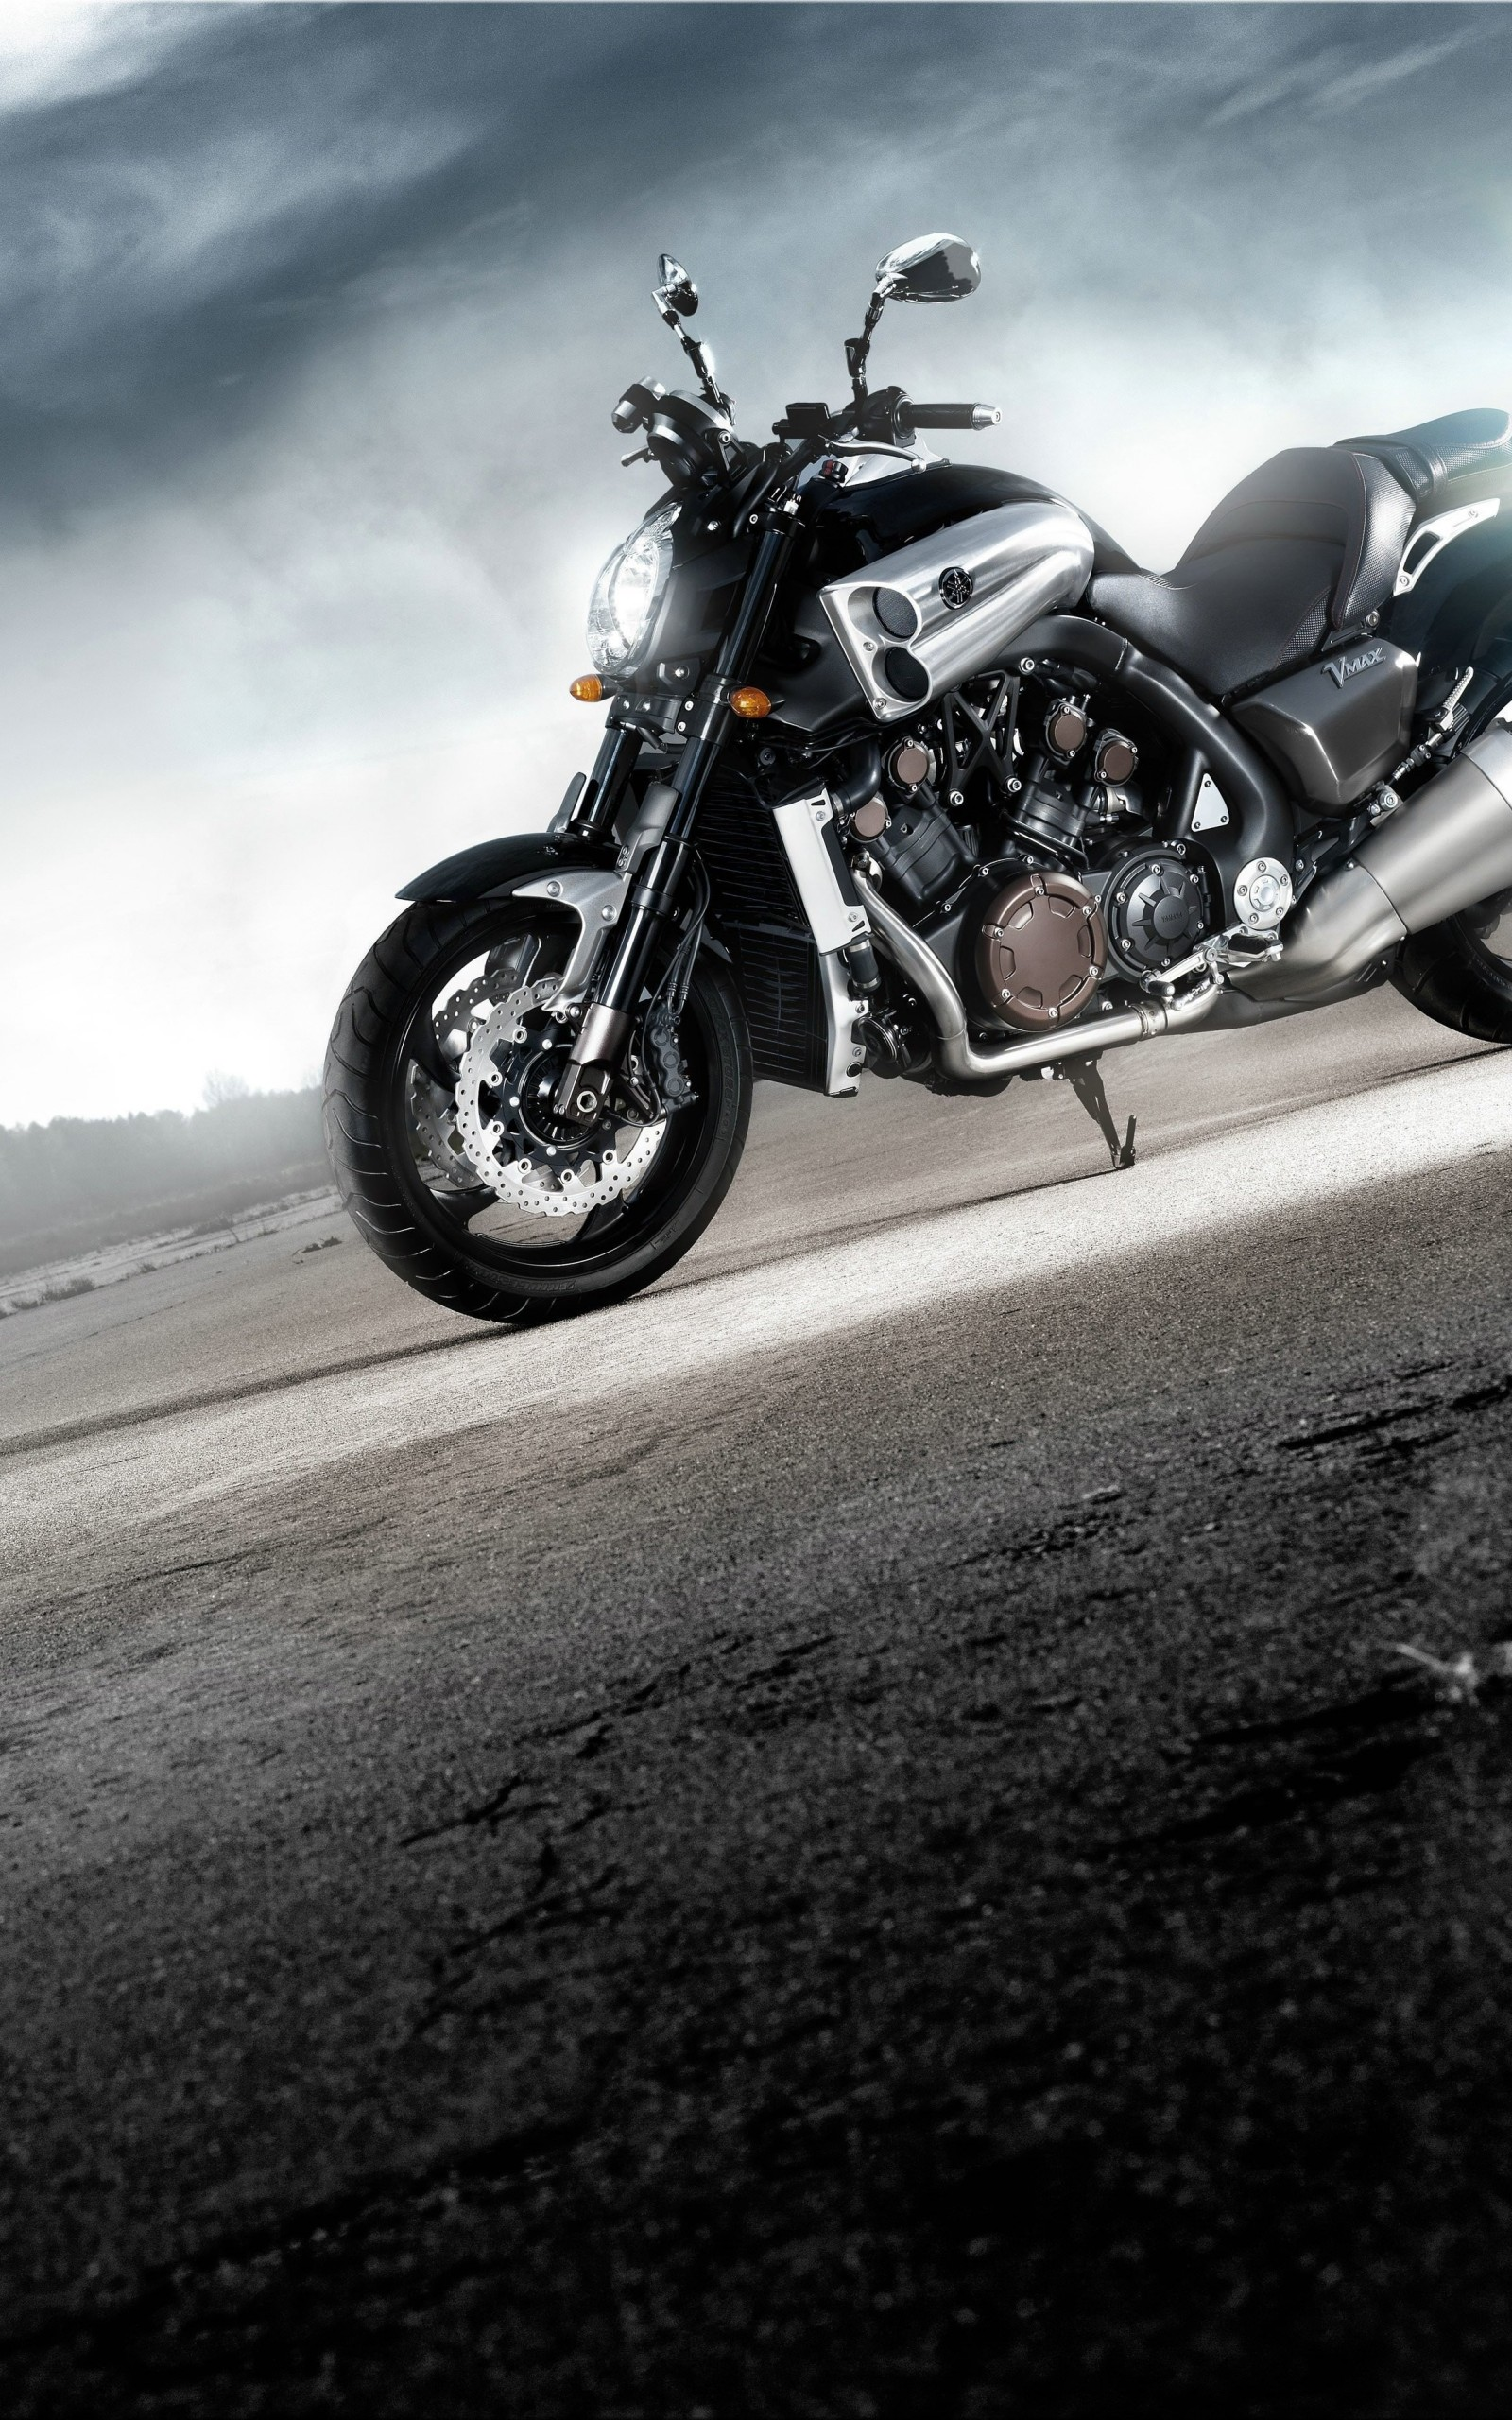 Yamaha VMax Wallpaper for Amazon Kindle Fire HDX 8.9